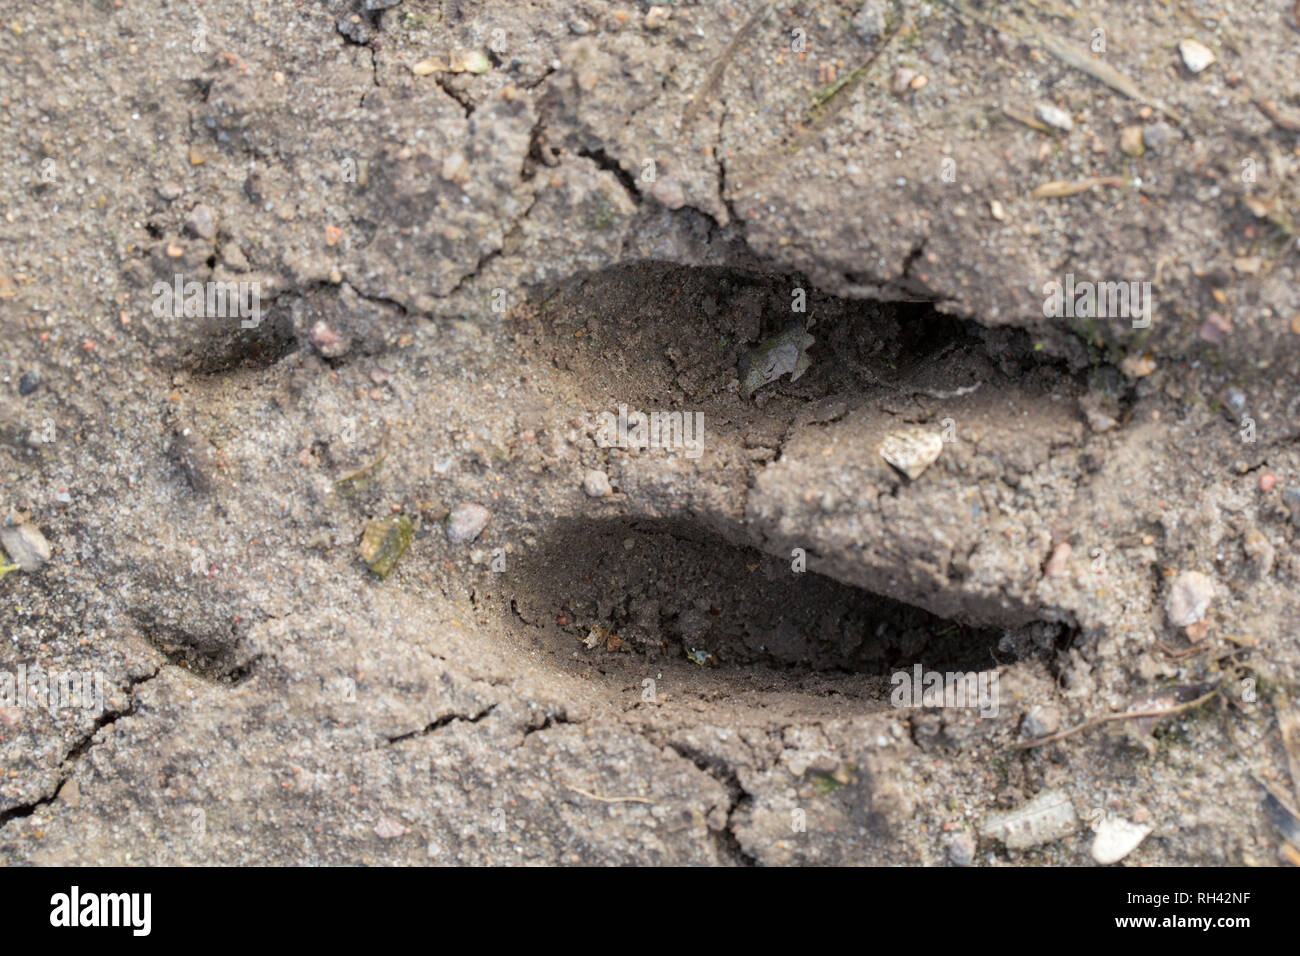 Fallow deer (Dama dama) footprint in sand showing hooves - Stock Image